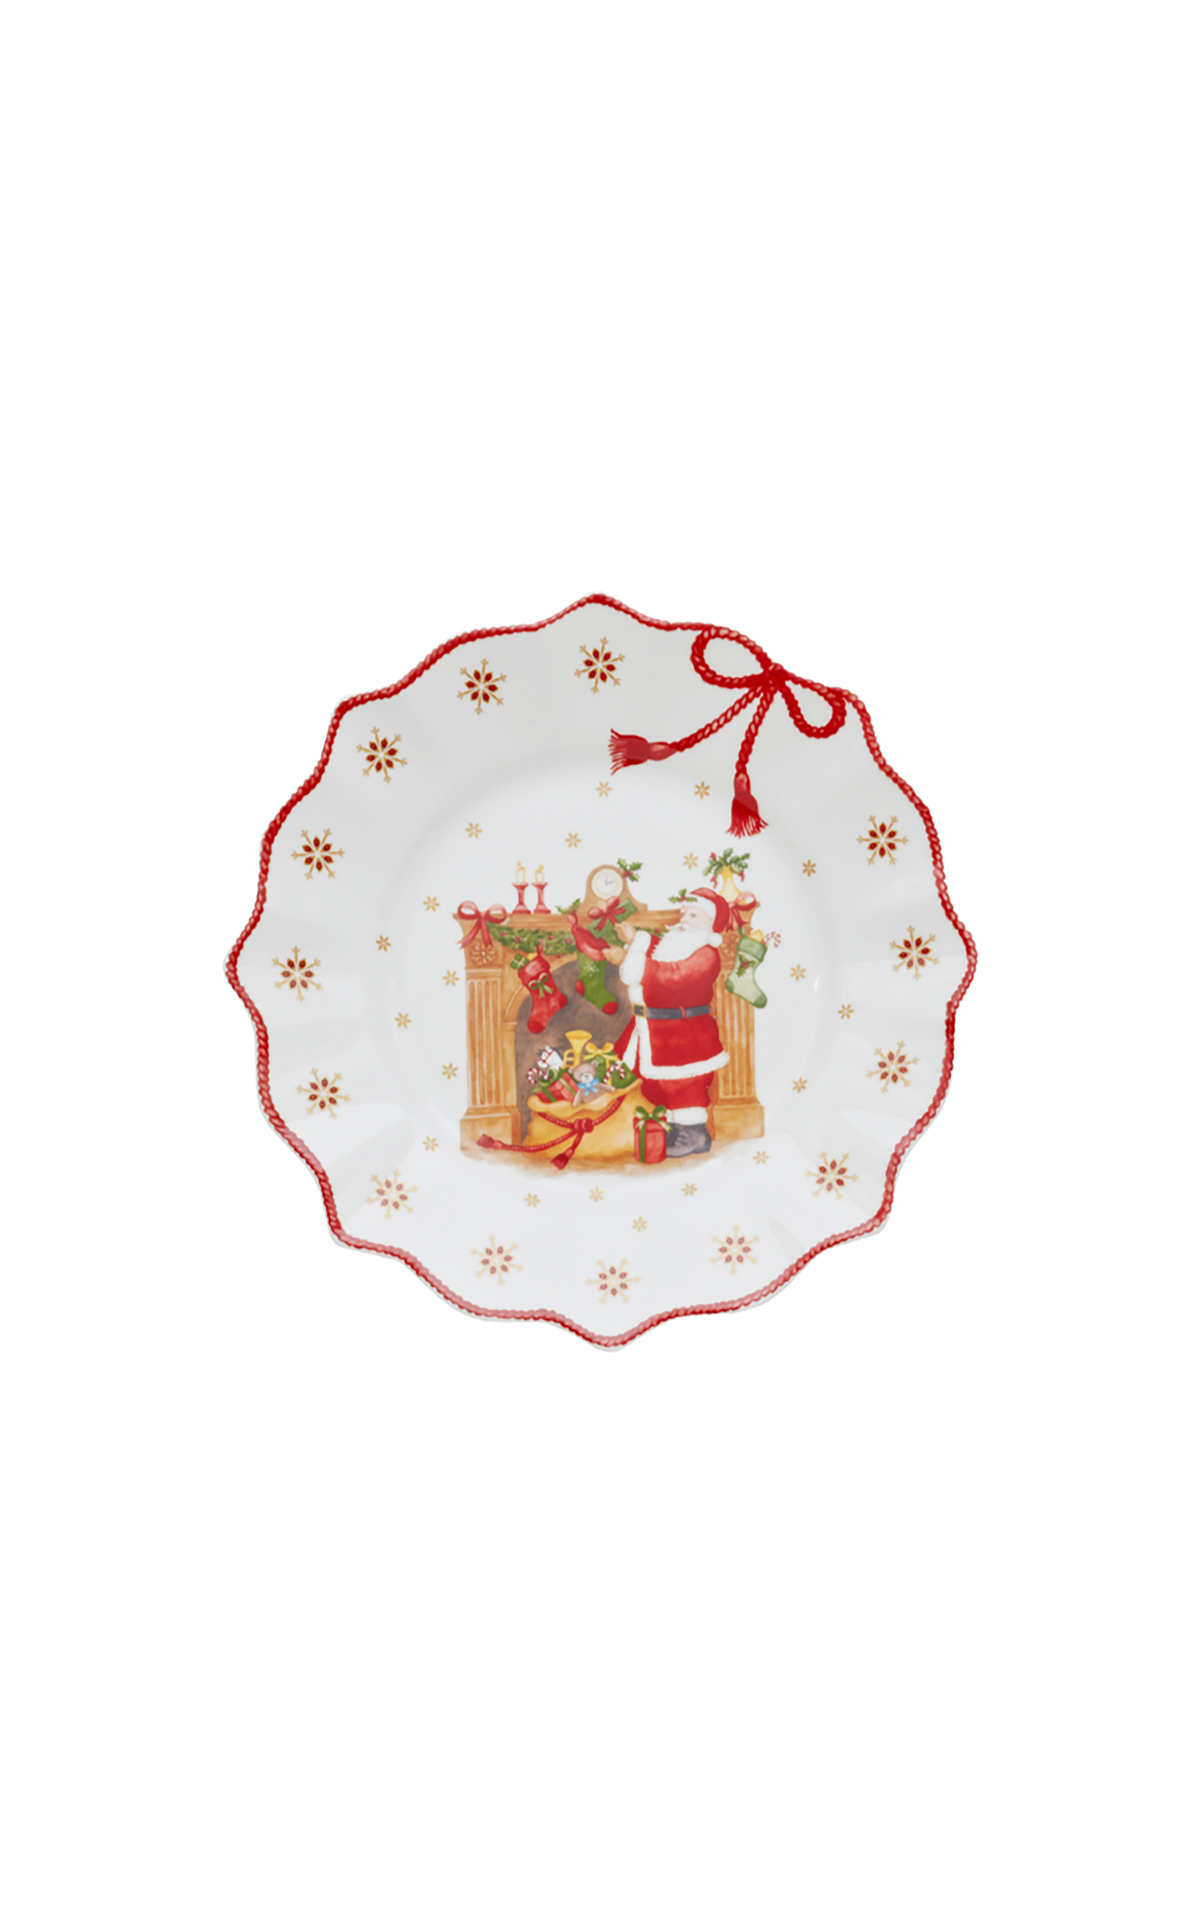 Villeroy & Boch Christmas edition plate from Bicester Village